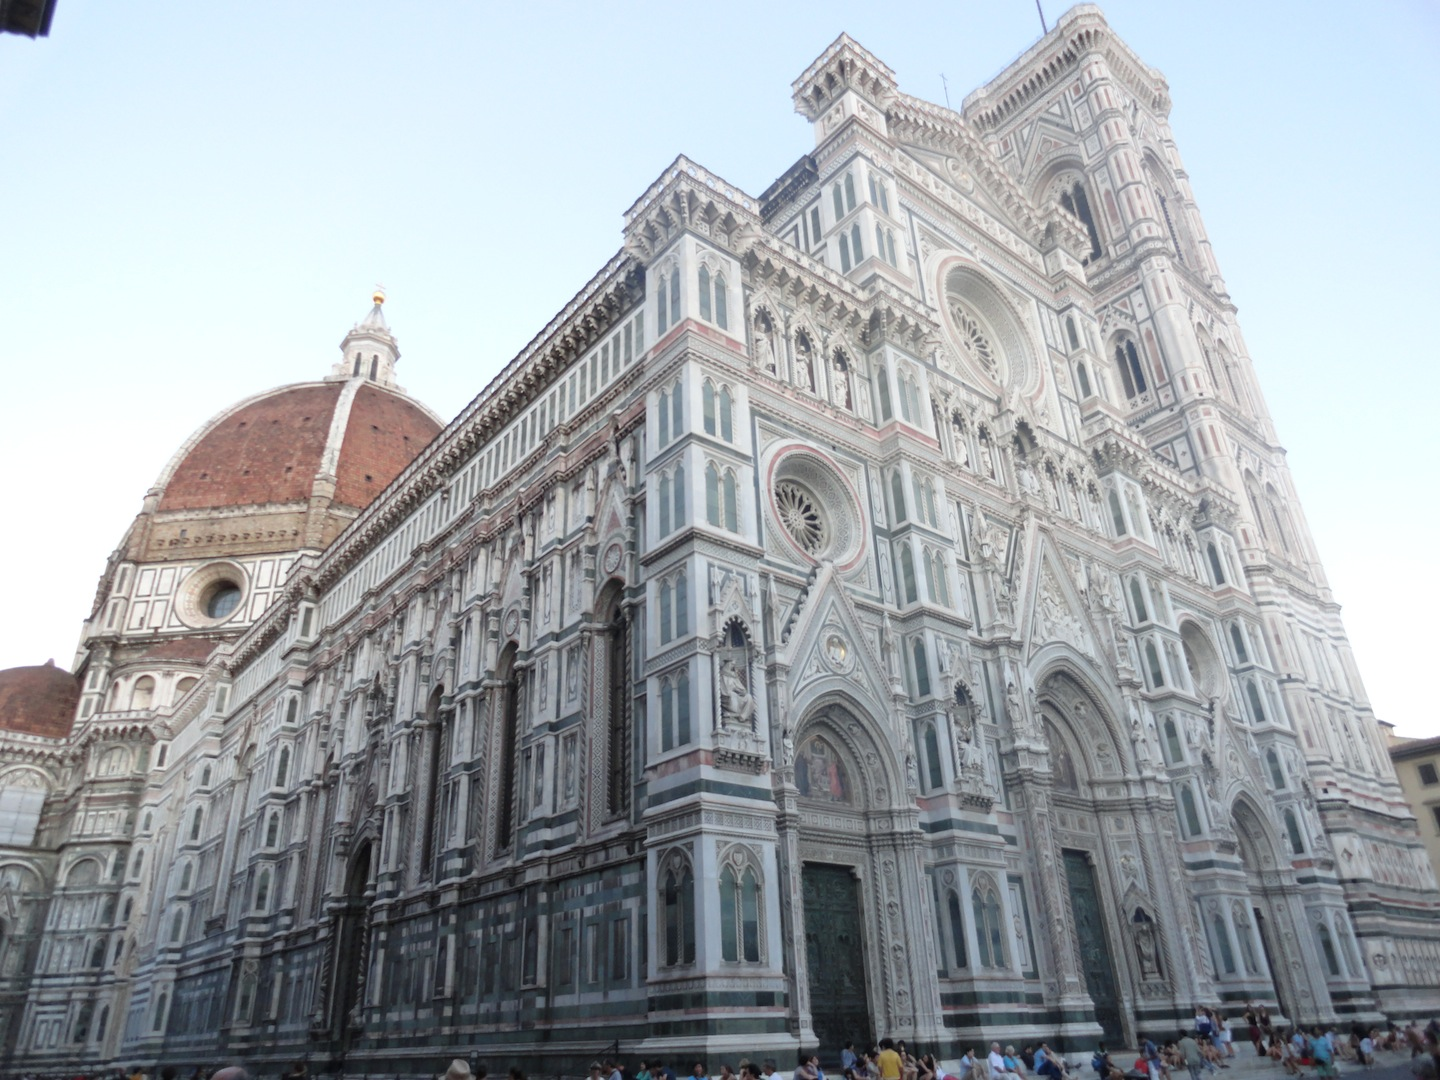 The Duomo in Firenze!